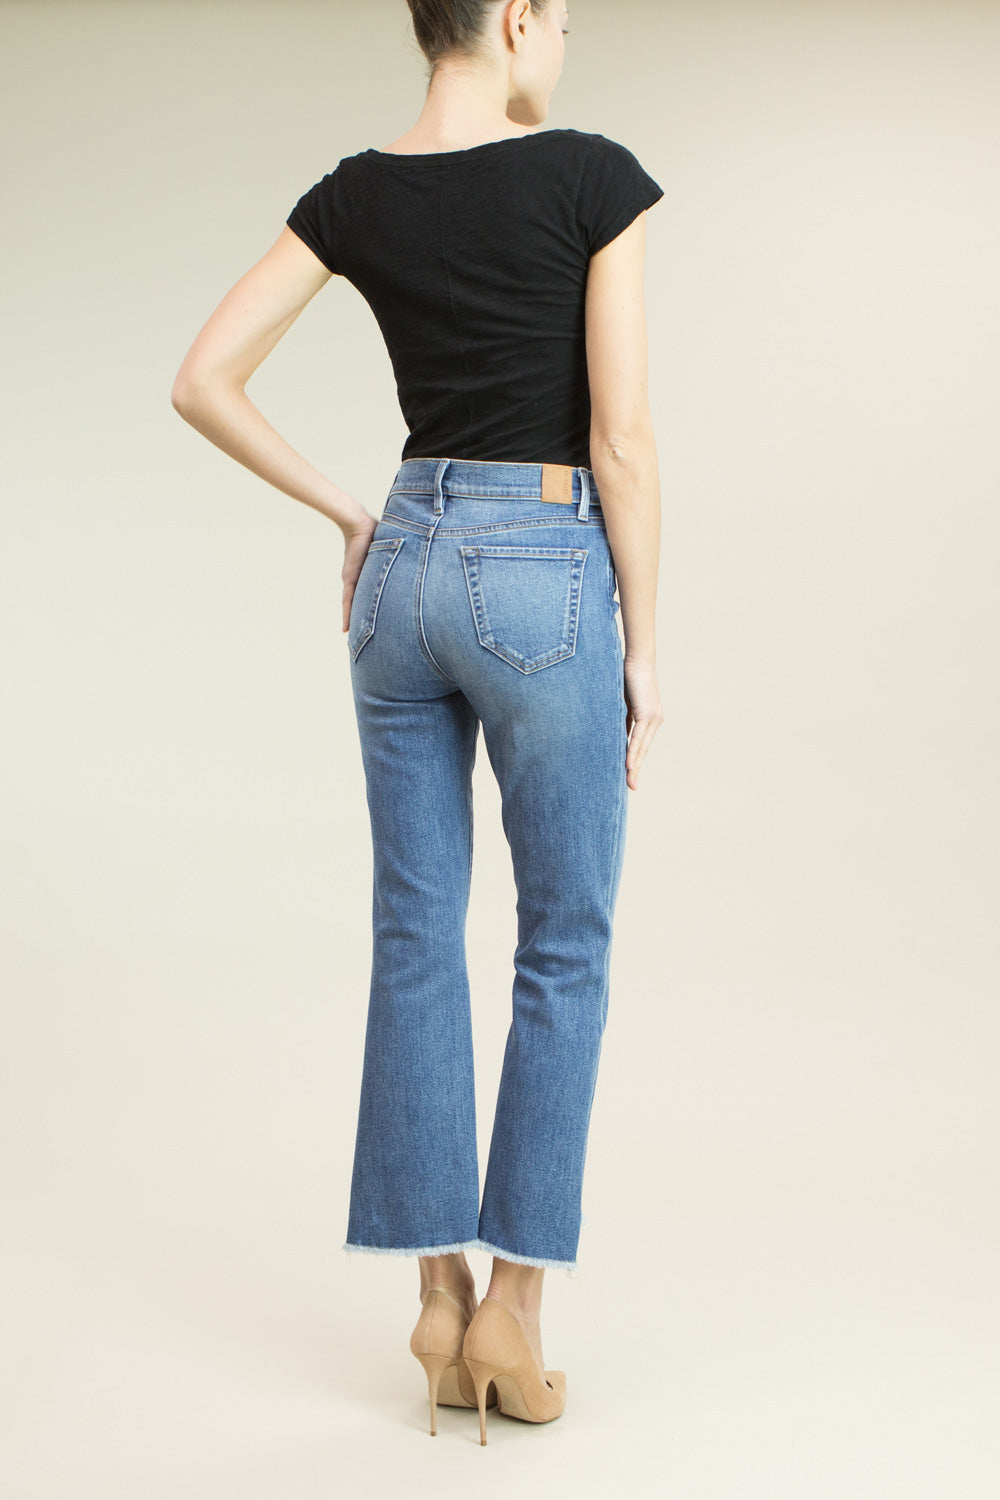 vintage blue wash high rise, straight leg style jean with frayed uneven hems.